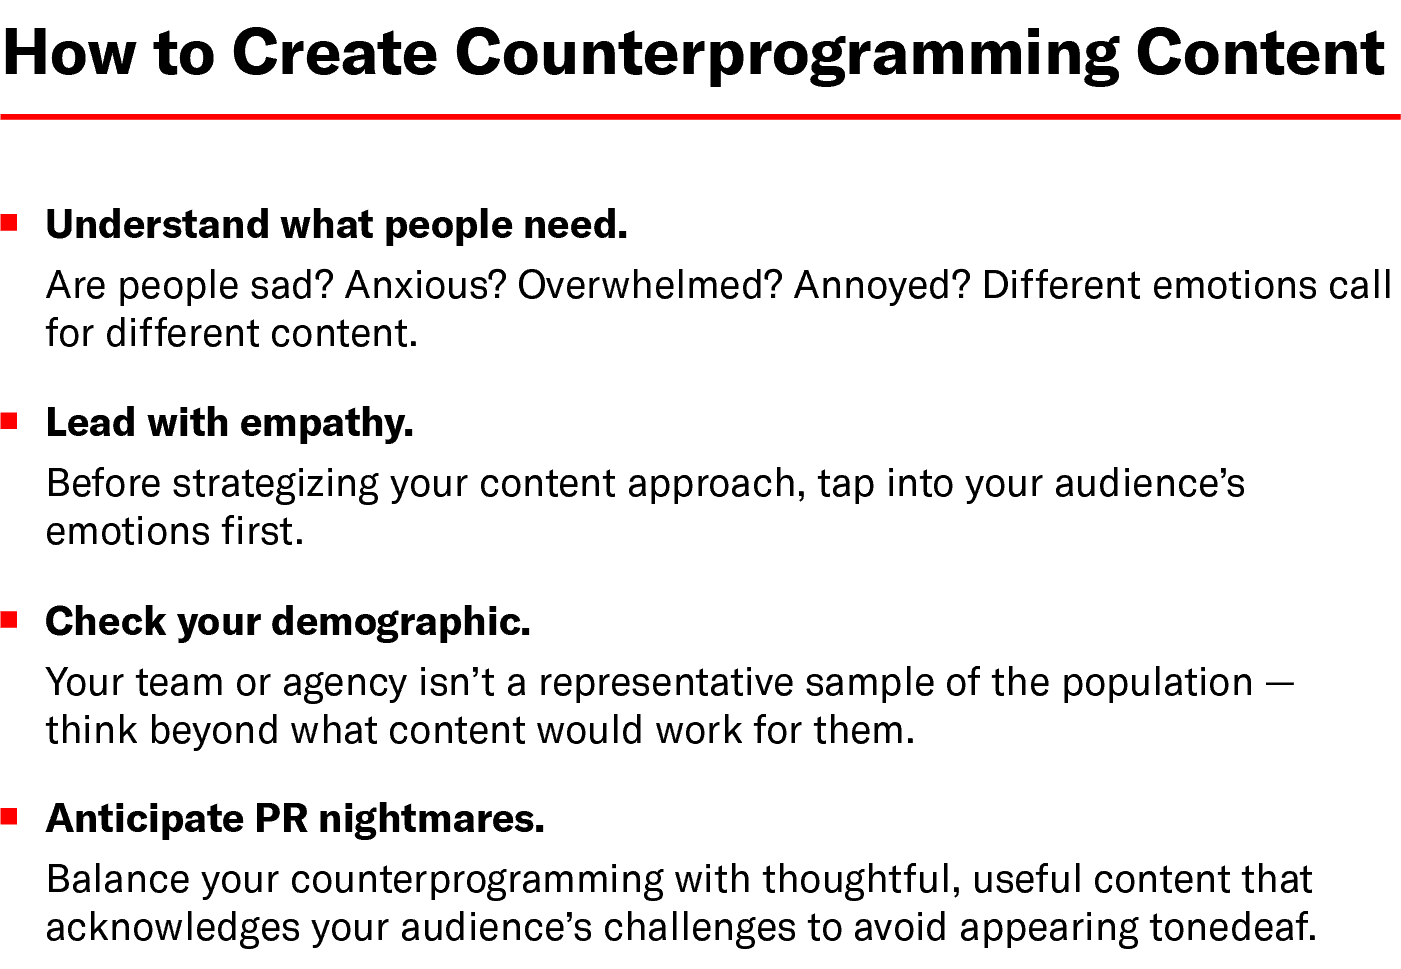 Chart: How to Create Counterprogramming